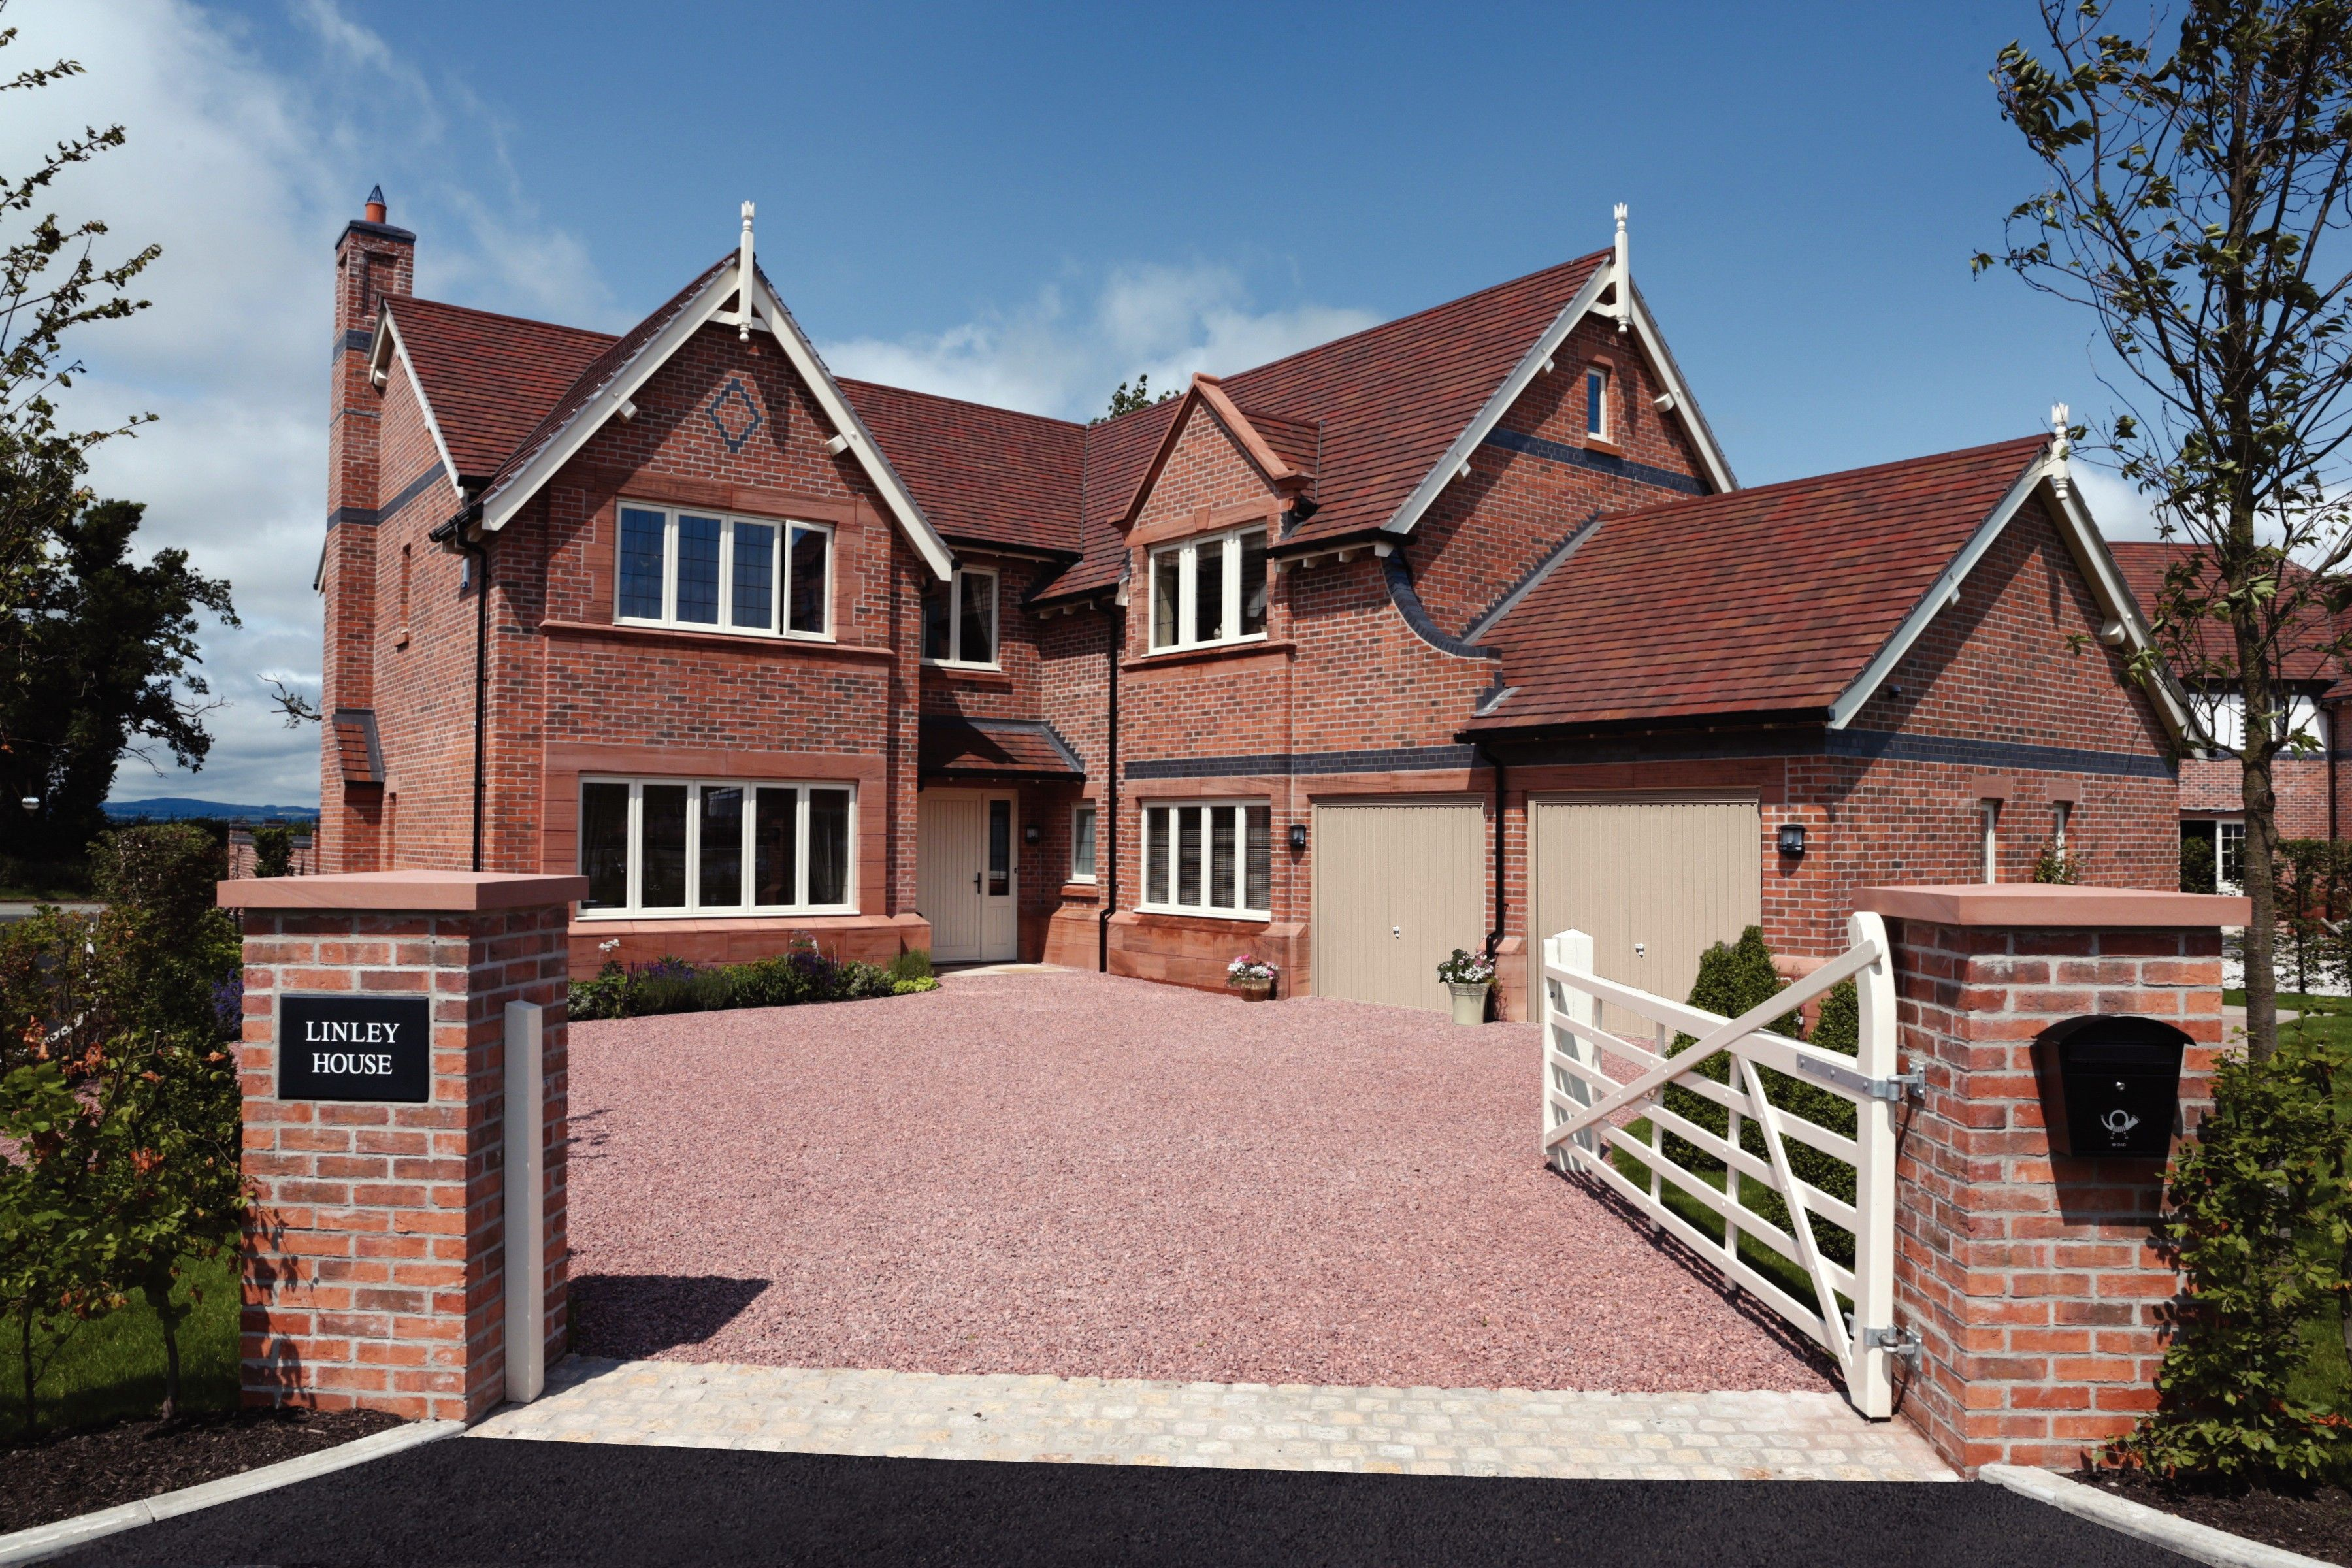 Forticrete s gemini roof tile at redrow homes nw for Gemini homes